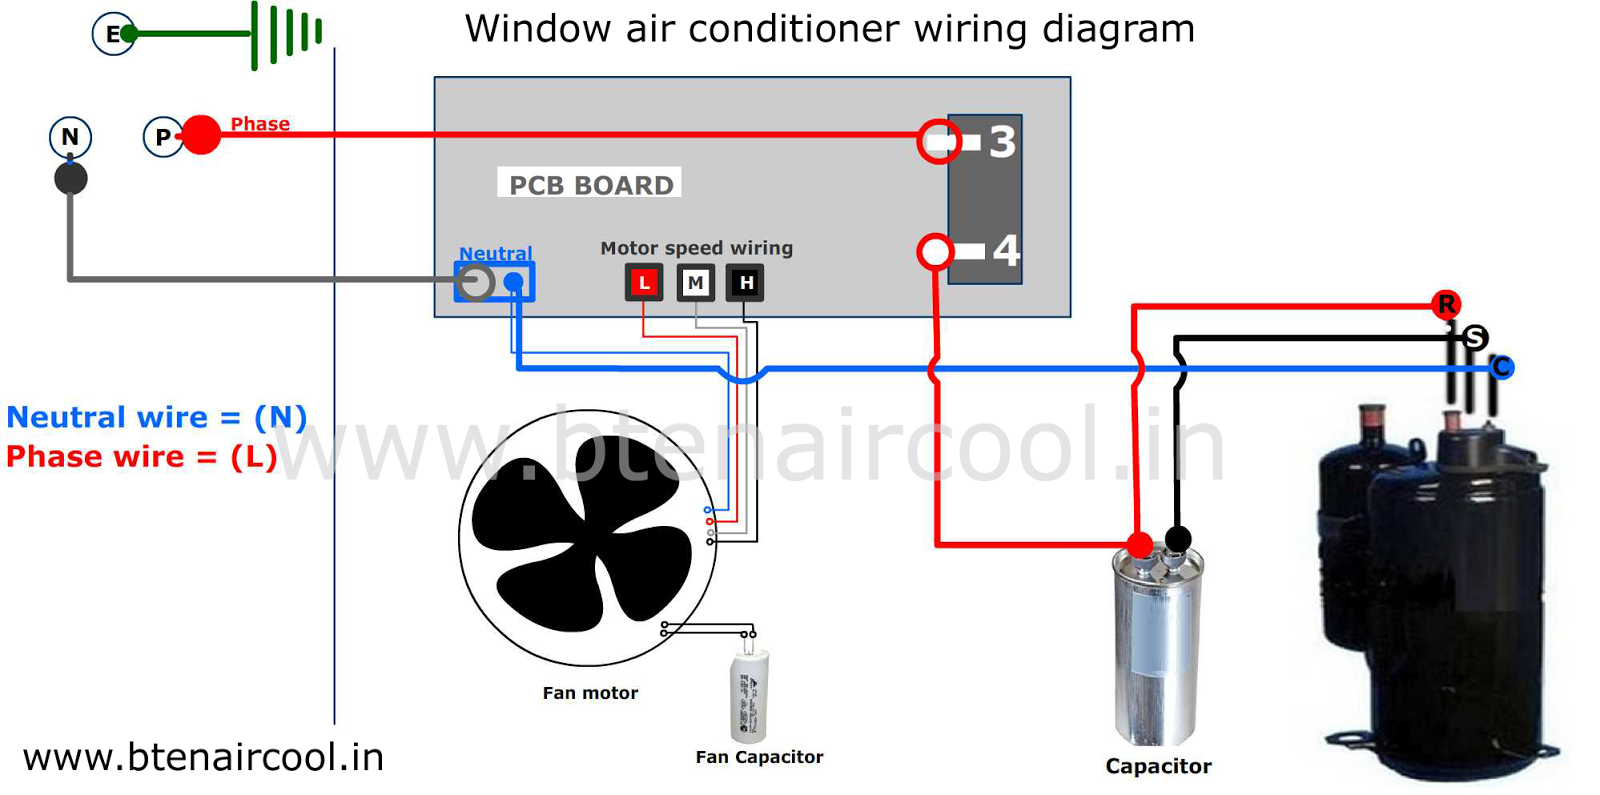 2 window air conditioner wiring diagram [ 1600 x 795 Pixel ]